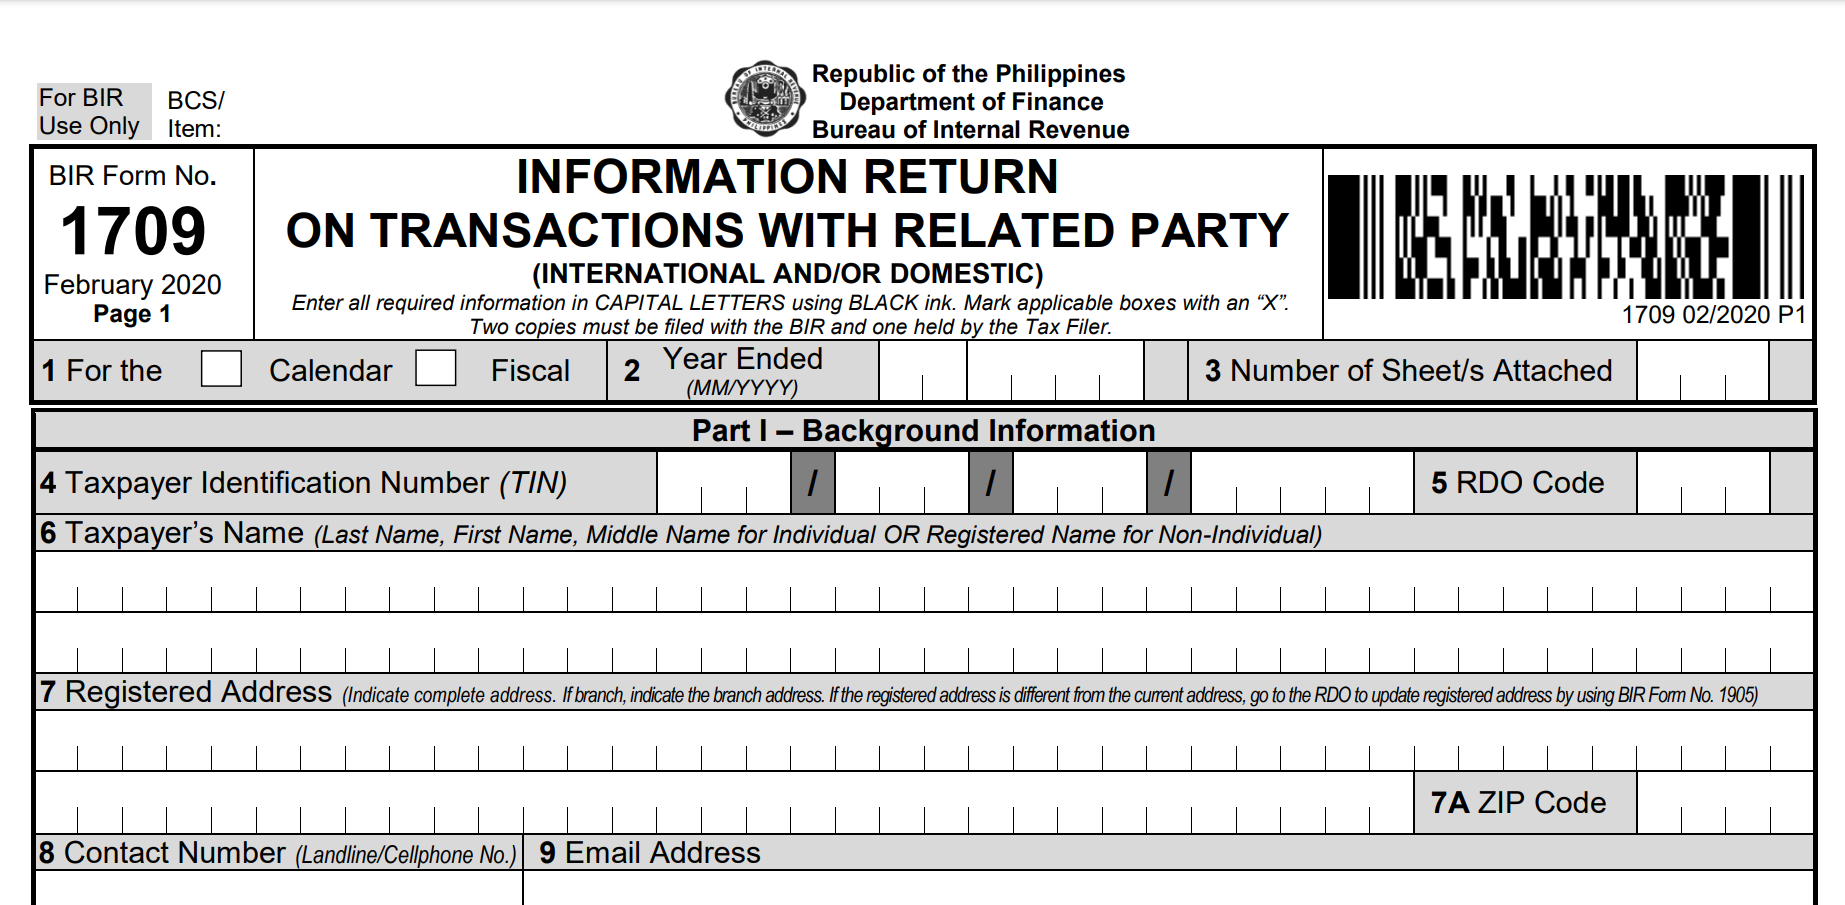 NEW BIR FORM 1709